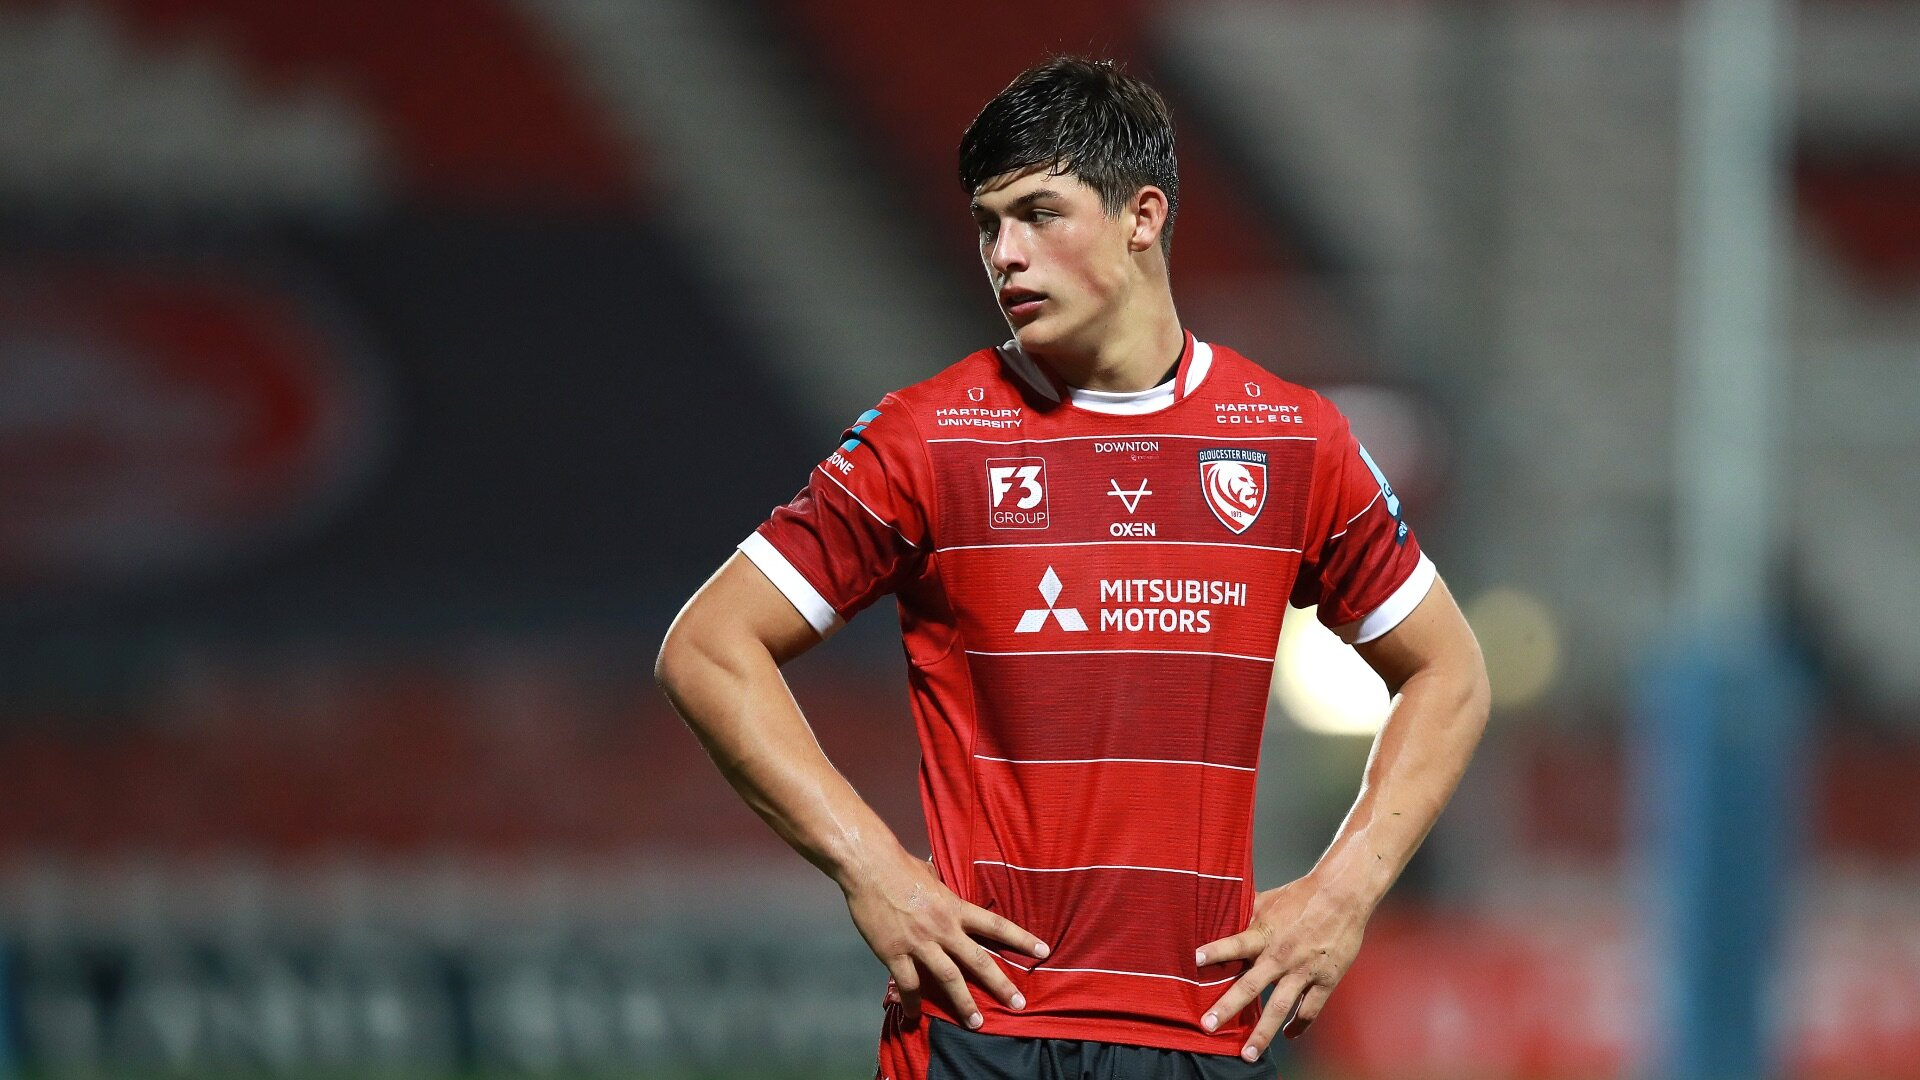 Rees-Zammit steals Wales limelight of record-equalling Jones